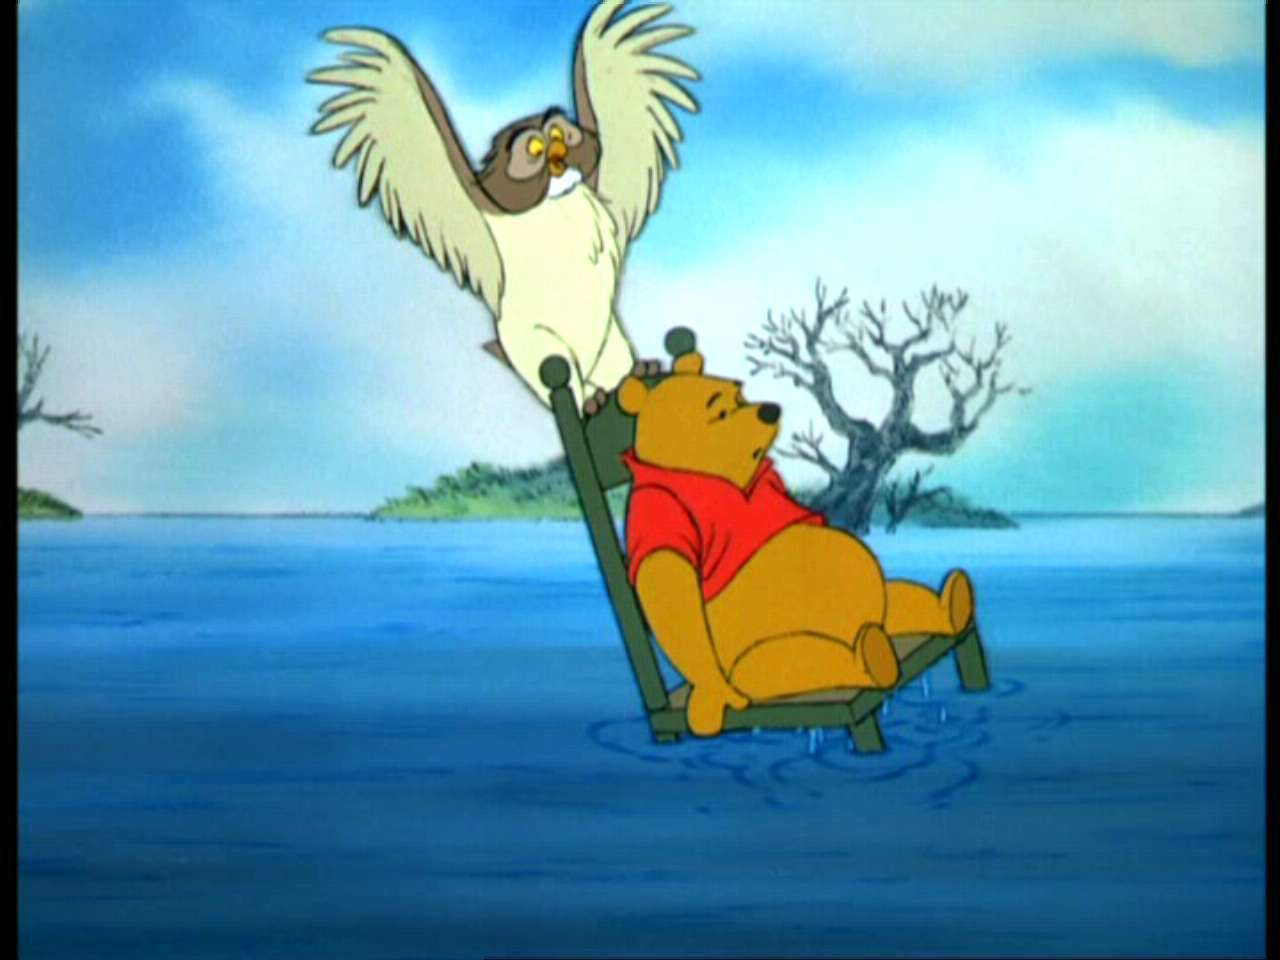 Winnie the Pooh and the Blustery Tag